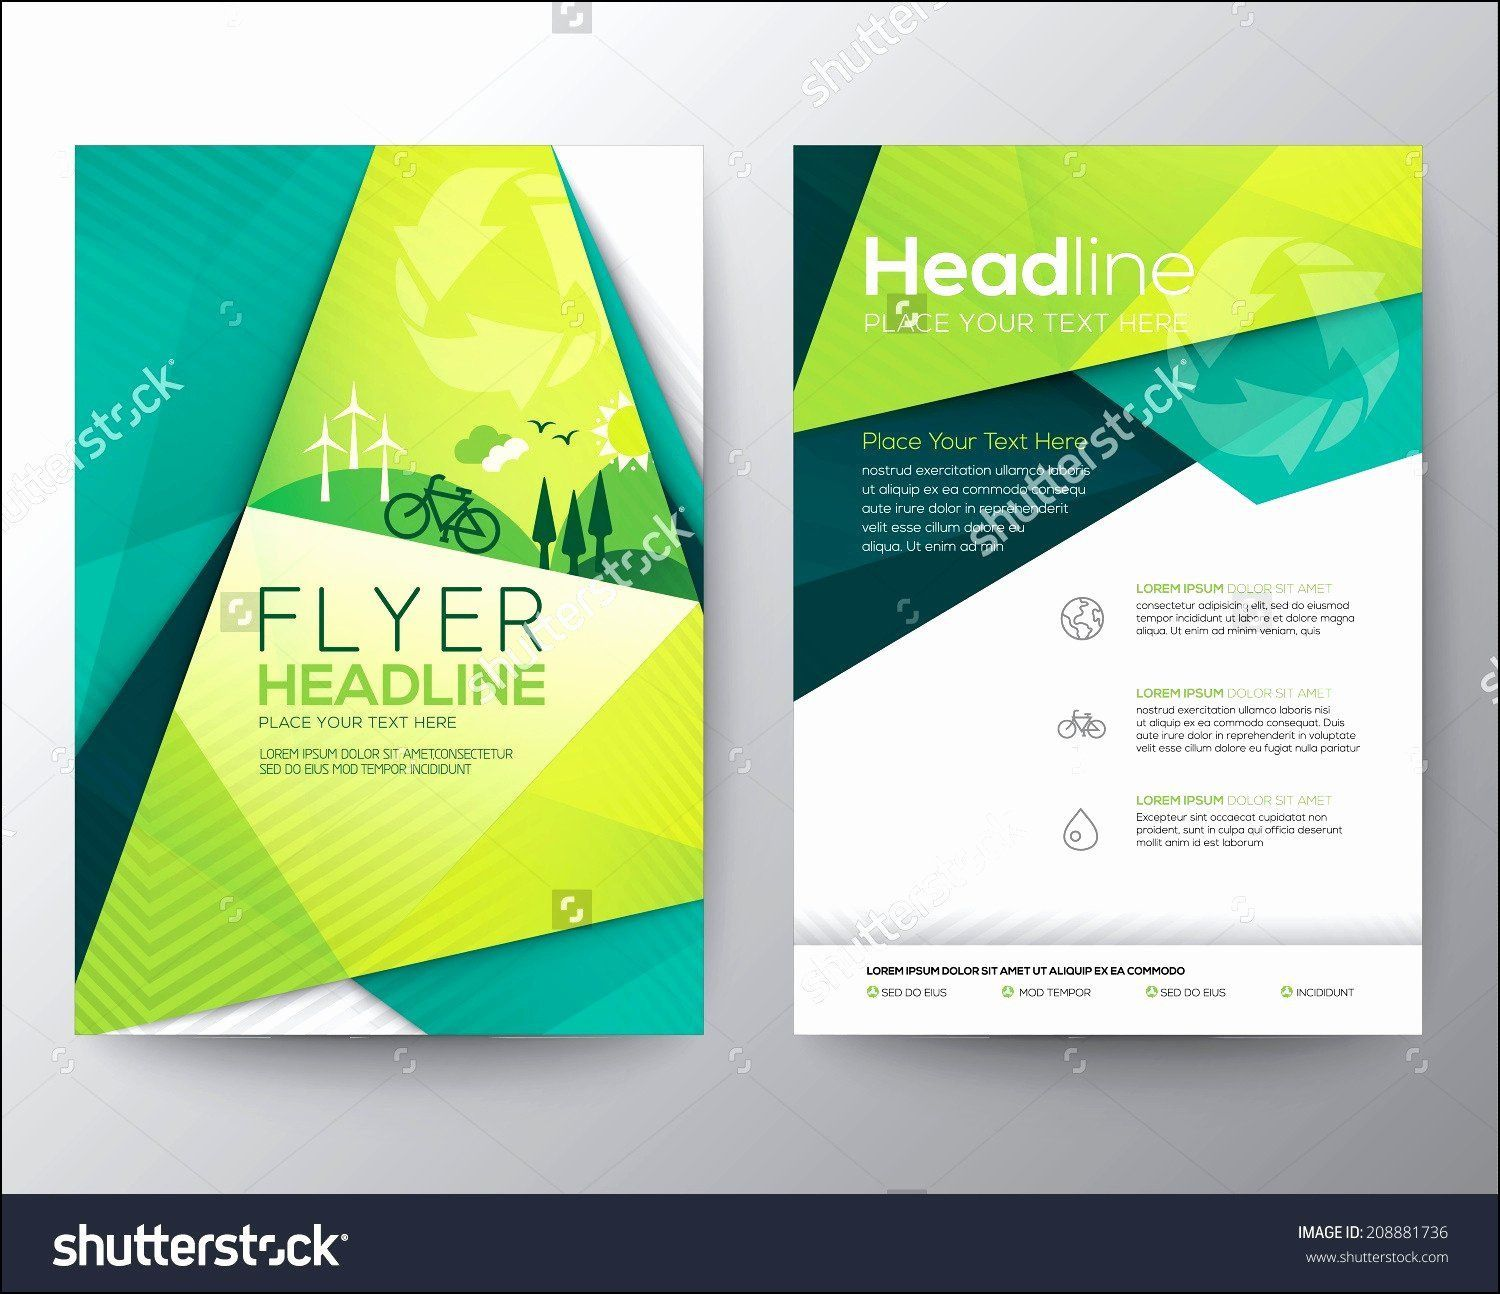 001 Impressive Photoshop Brochure Design Template Free Download Photo Full